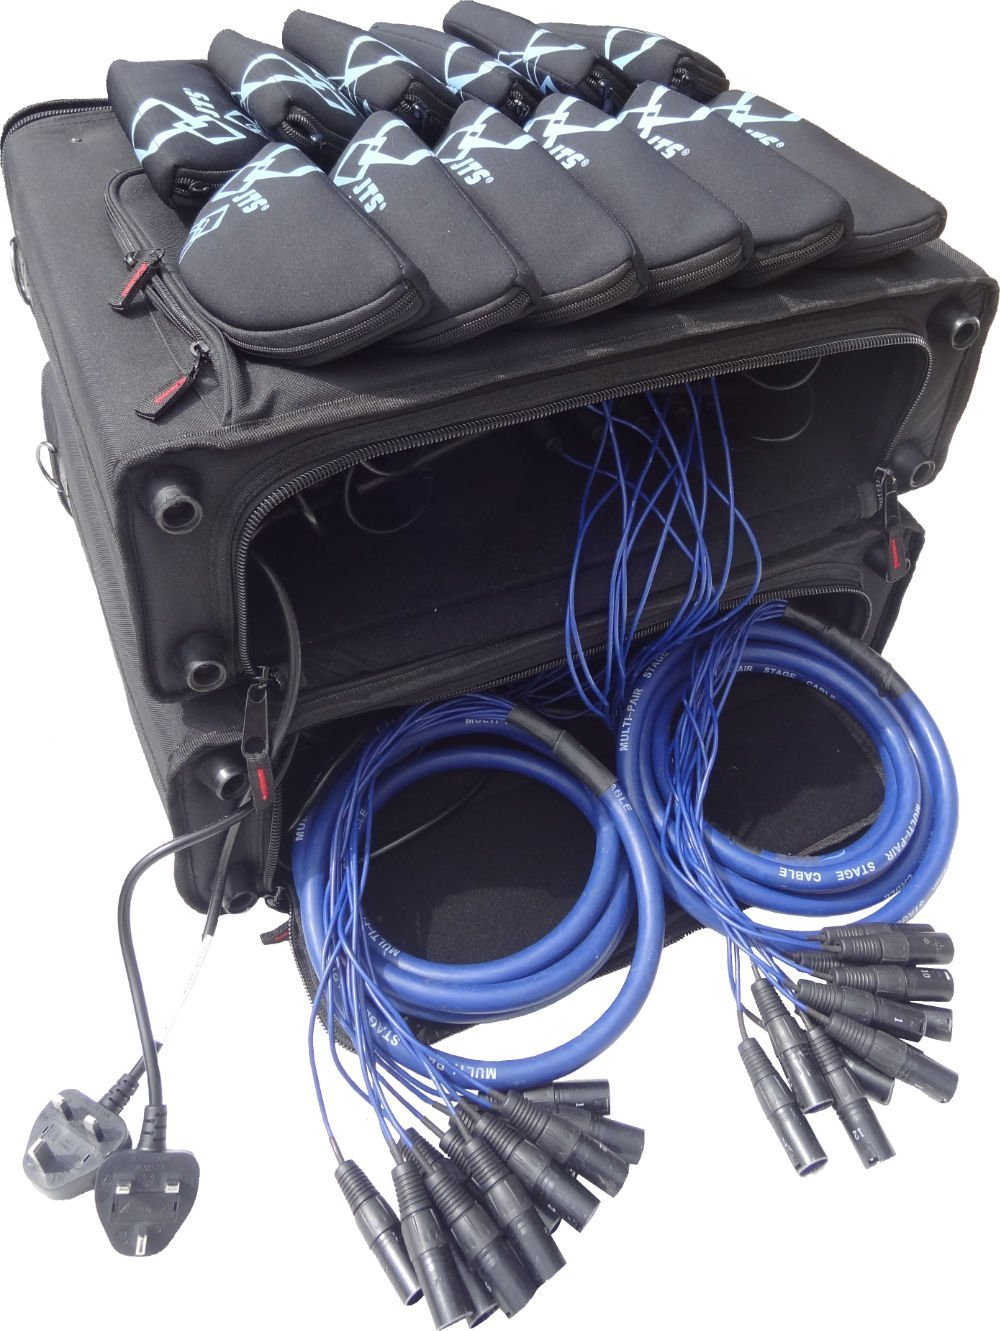 Sound Hire 24 way rack of JTS R-4 radio mic package with cables and transmitter packs